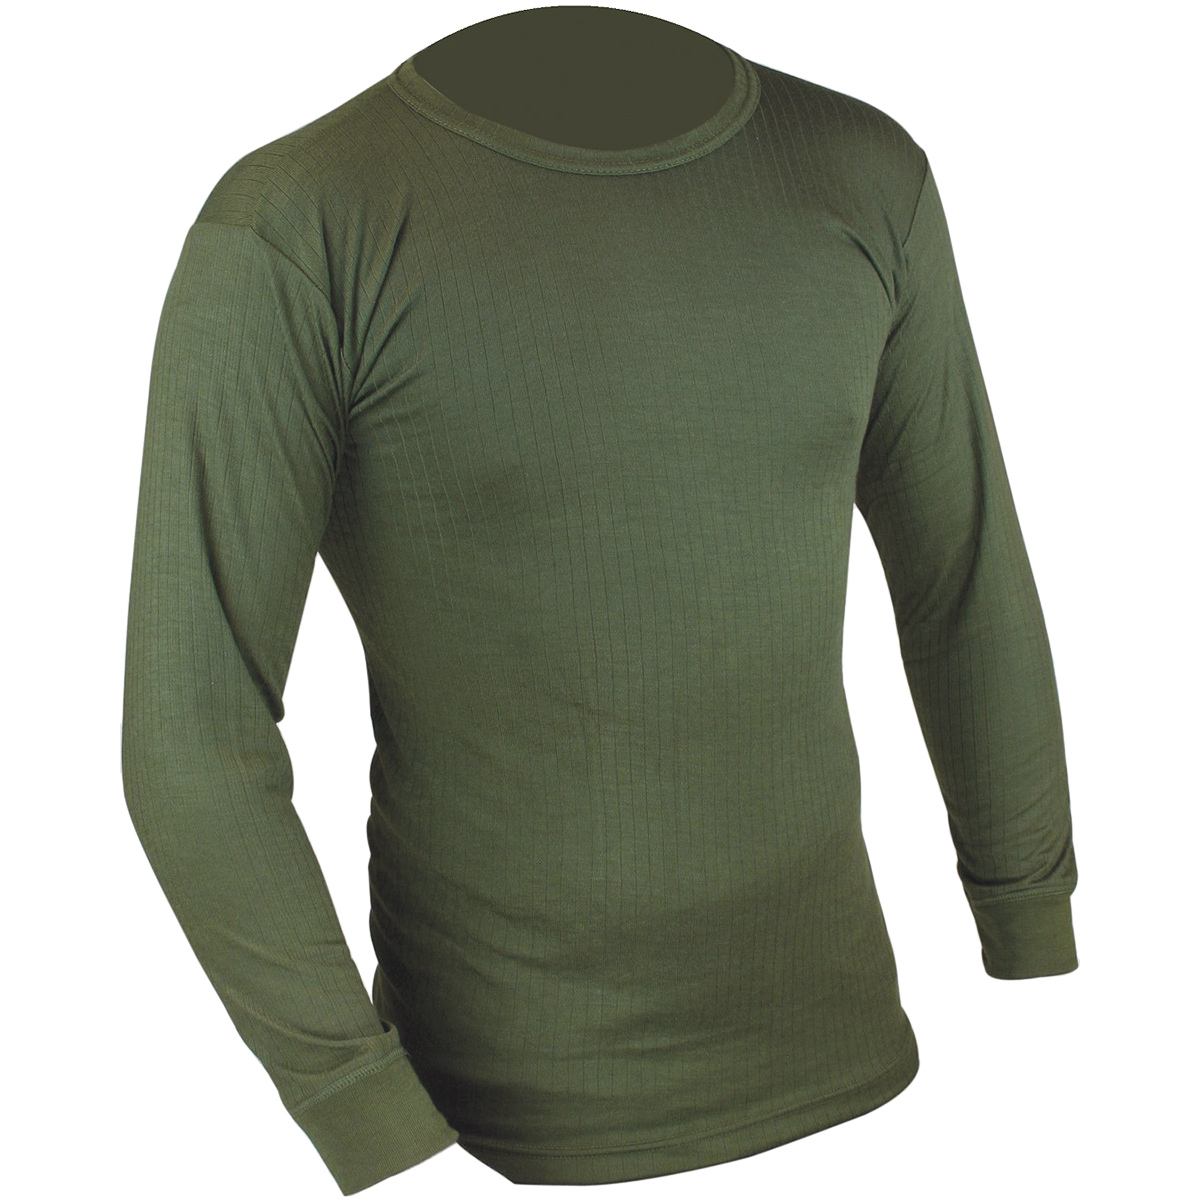 Shop paydayloansboise.gq for men's clothing. Find men's t-shirts, men's jackets, men's cargo pants, flannel shirts for men, polos and men's hoodies.